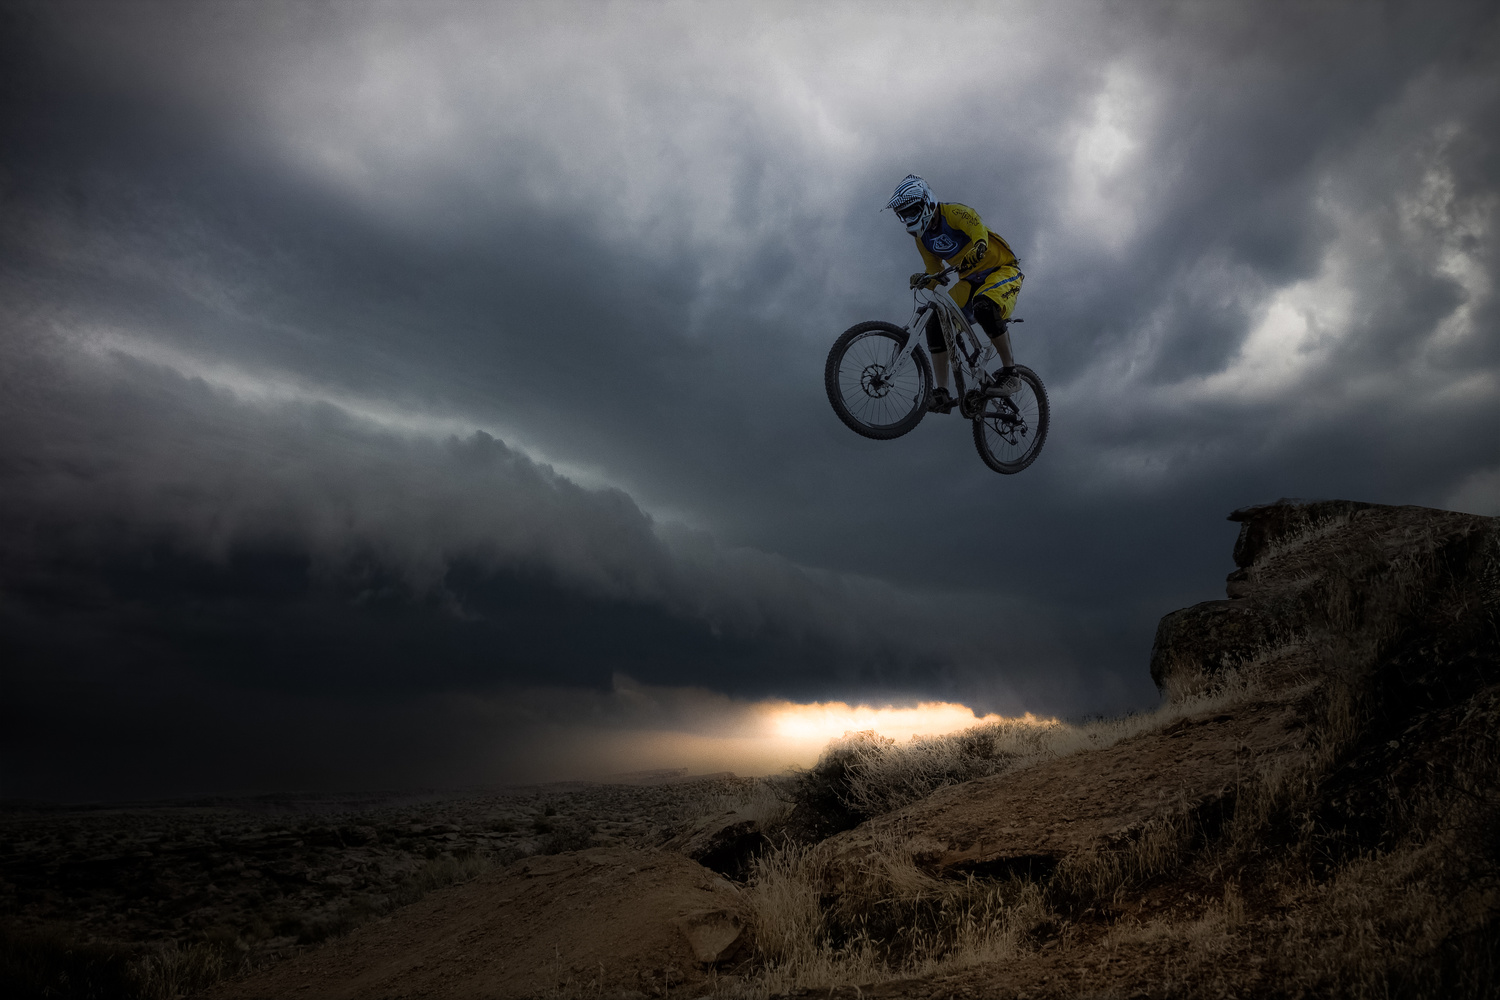 Over the Storm by Miguel Martins